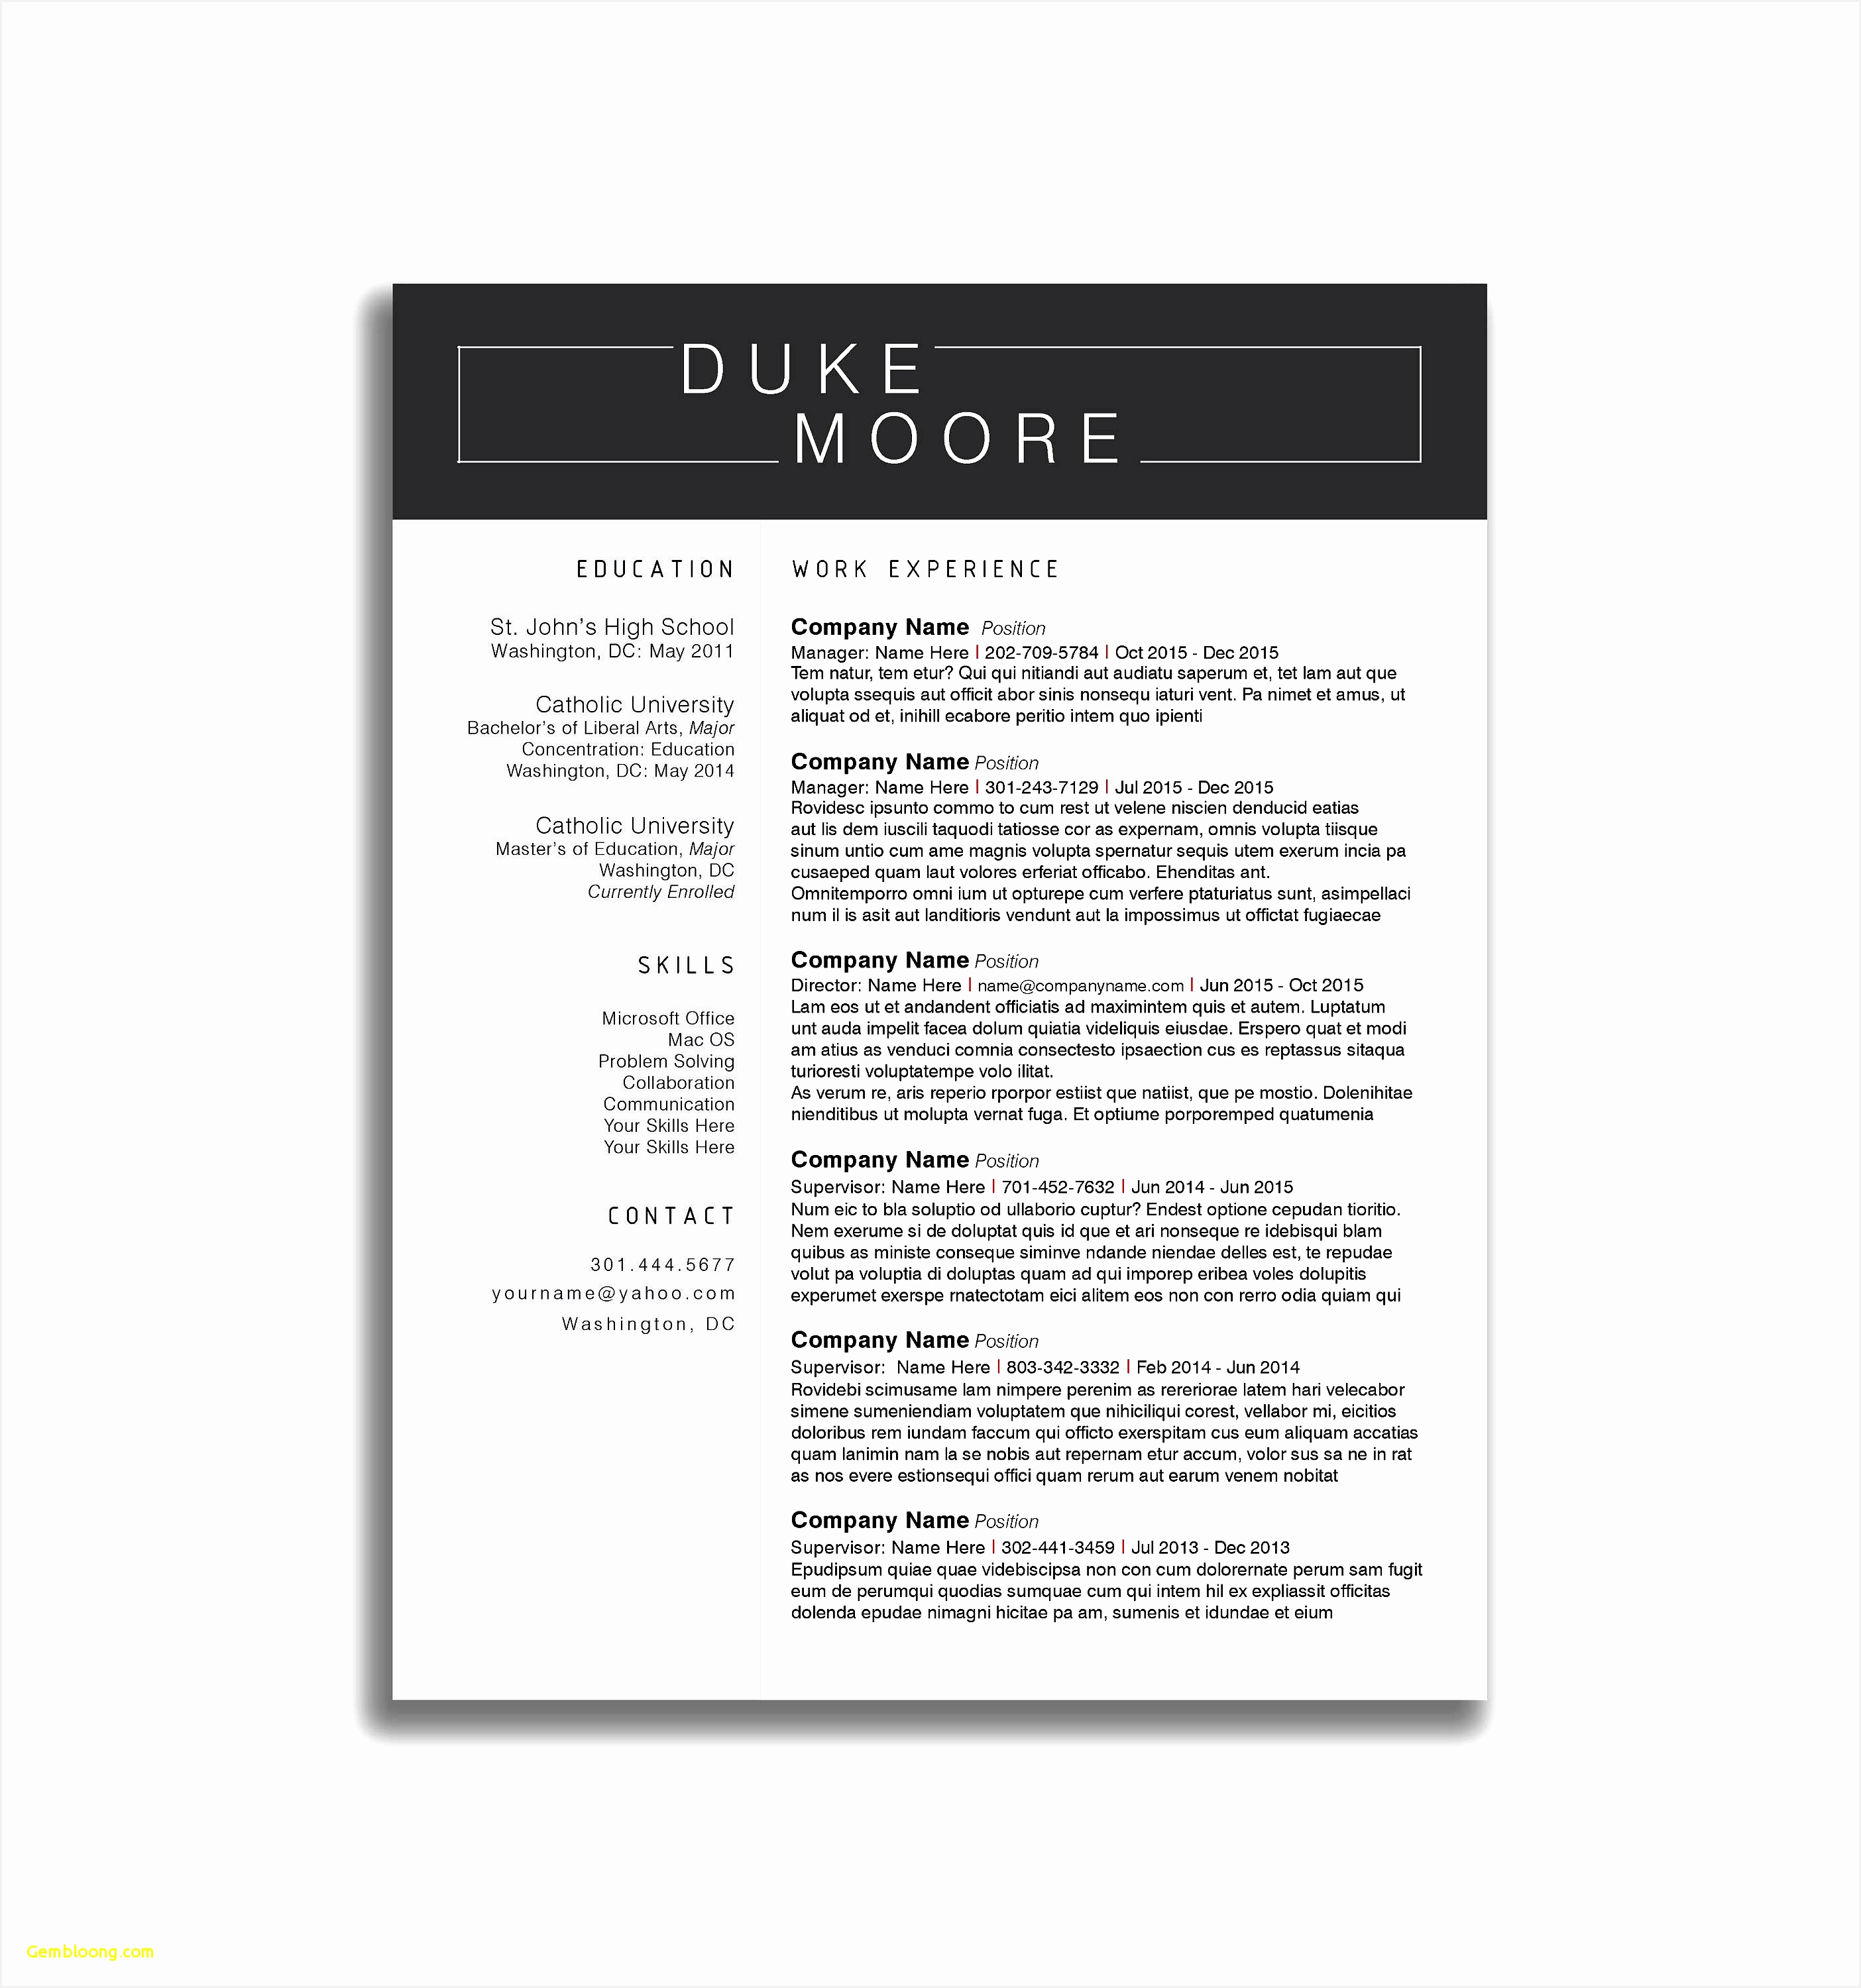 Professional Resume Template Free New Legal Resume Template Word Free Download Resume Writing Examples30002808